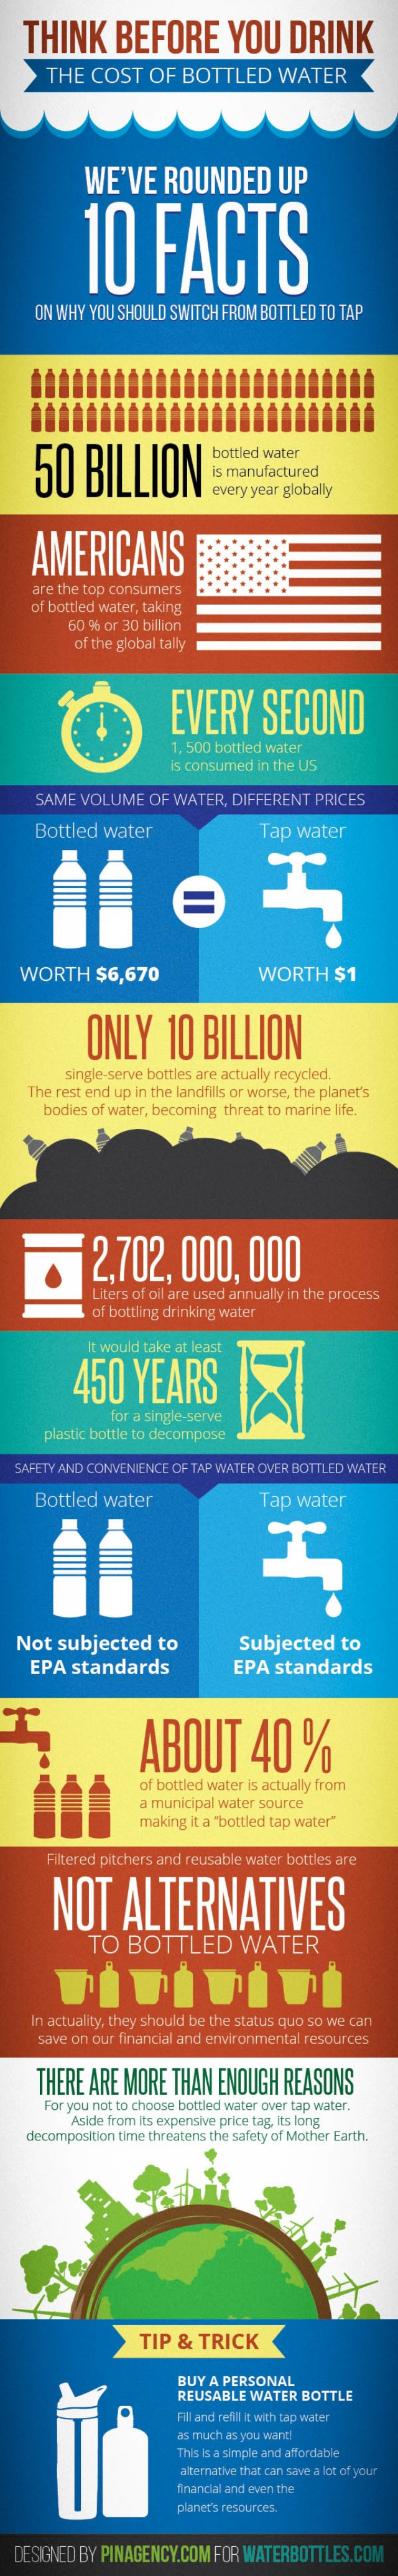 think-before-you-drink-the-costs-of-bottled-water_5379b122d46ee_w1500